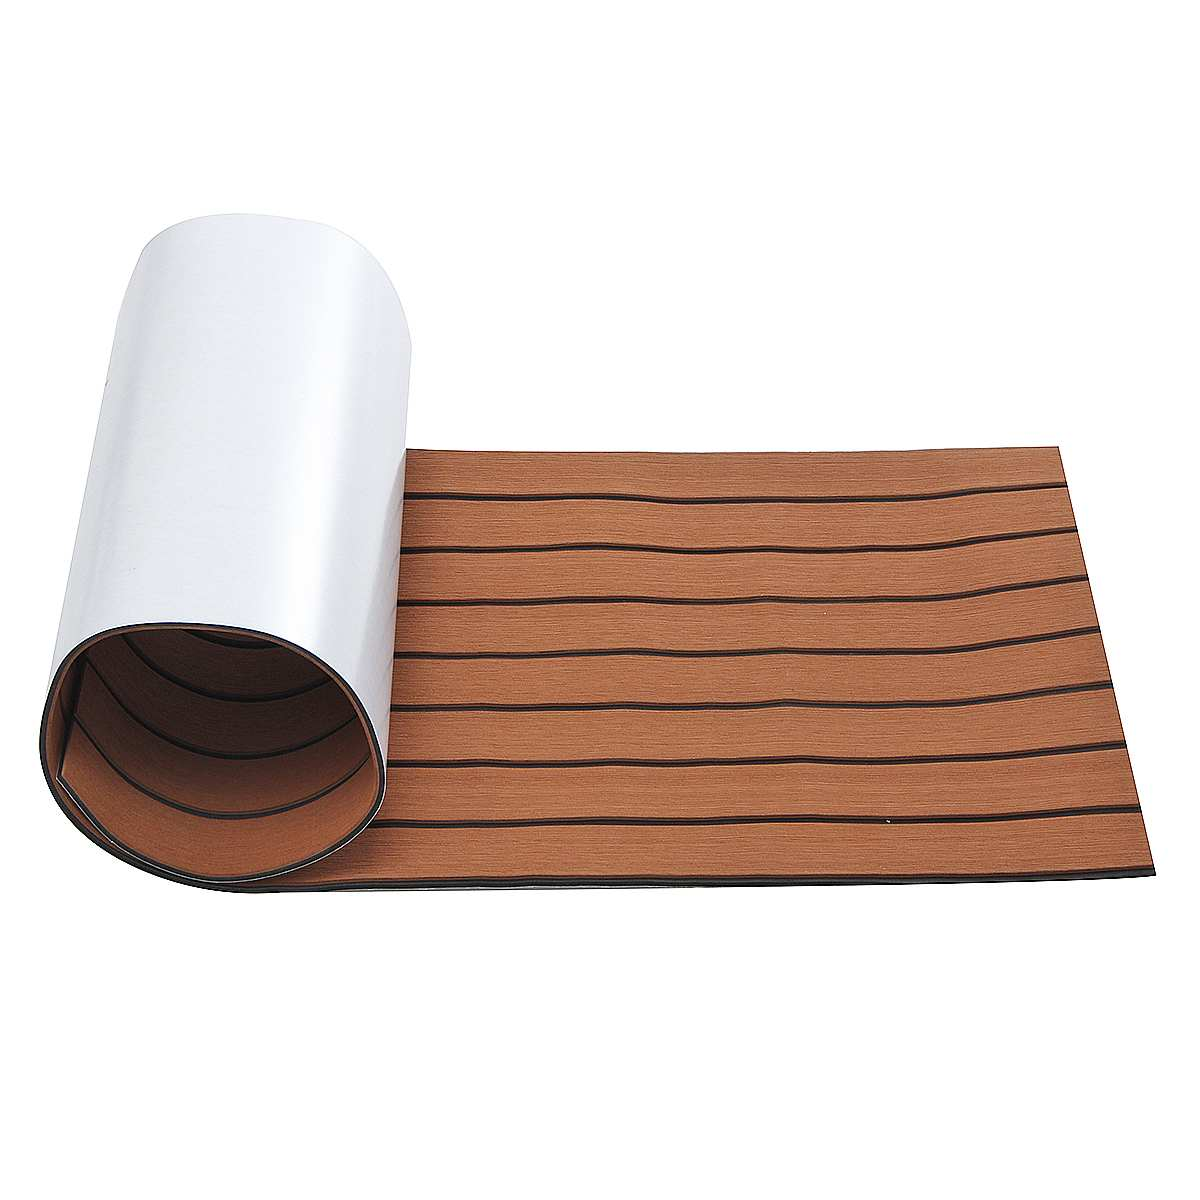 Self Adhesive Marine Floor EVA Foam Imitated Teak Boat Deck Mat Brown Yacht Flooring Anti Skid MatRecreational Vehicle Pad